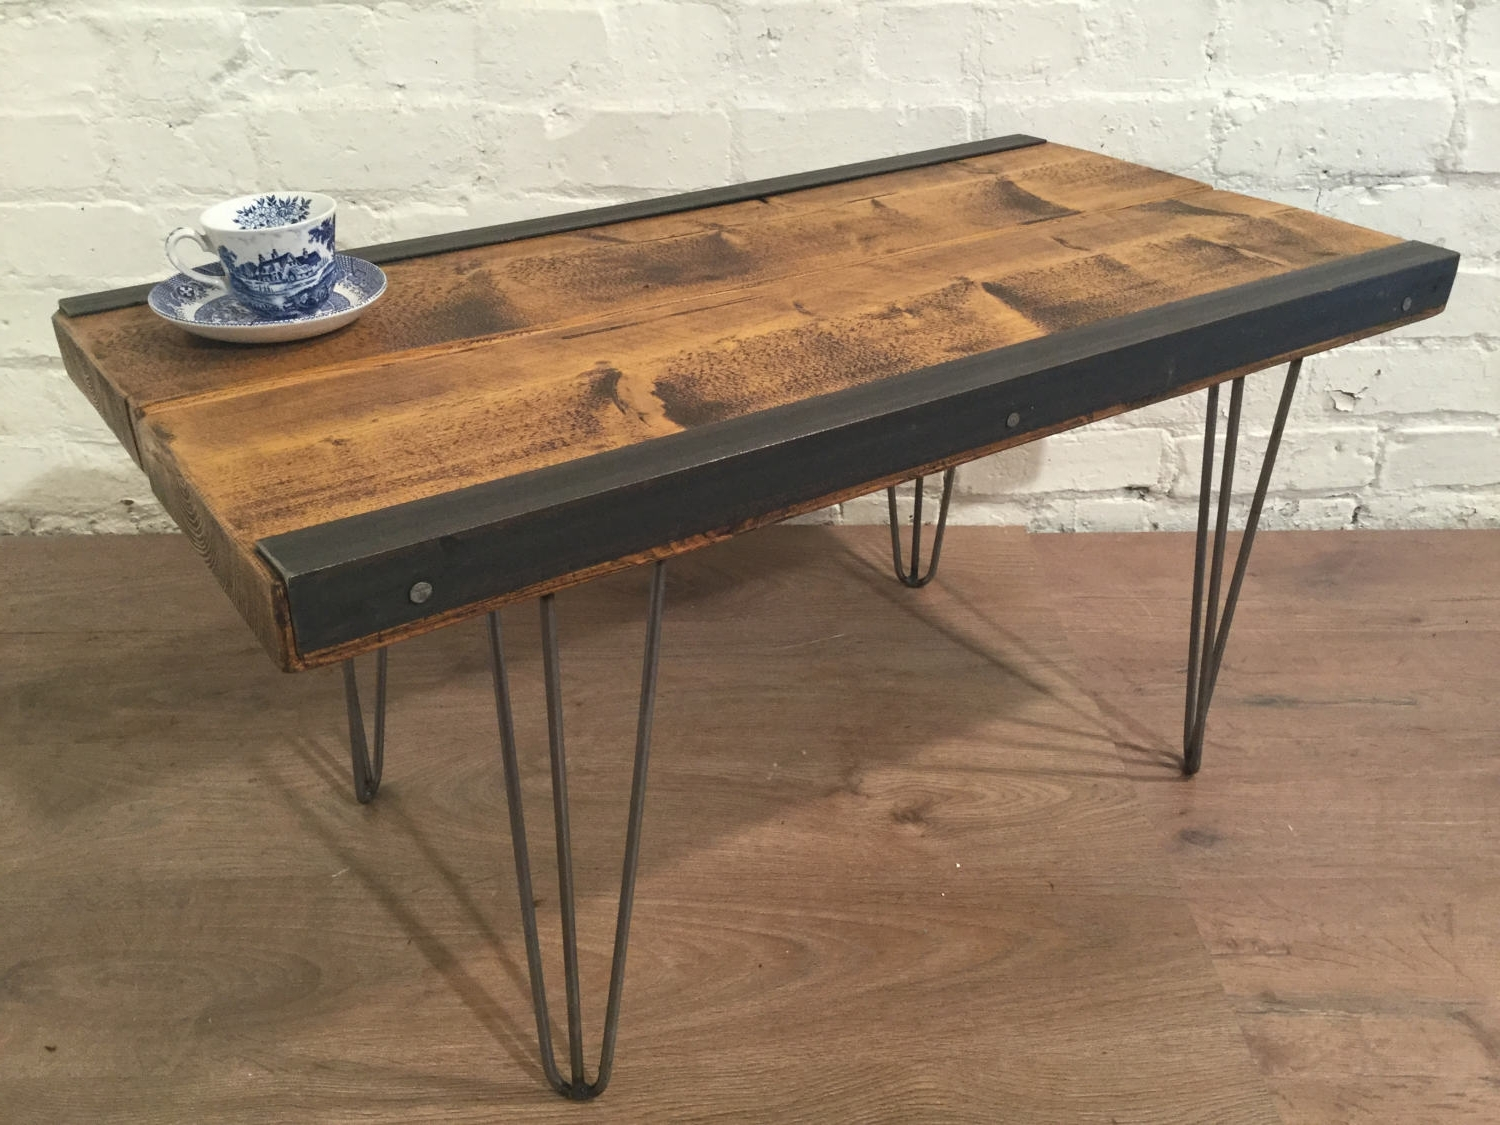 Widely Used Reclaimed Pine & Iron Coffee Tables Intended For English Built Hand Made Solid Reclaimed Pine Plank Industrial Coffee (View 17 of 20)